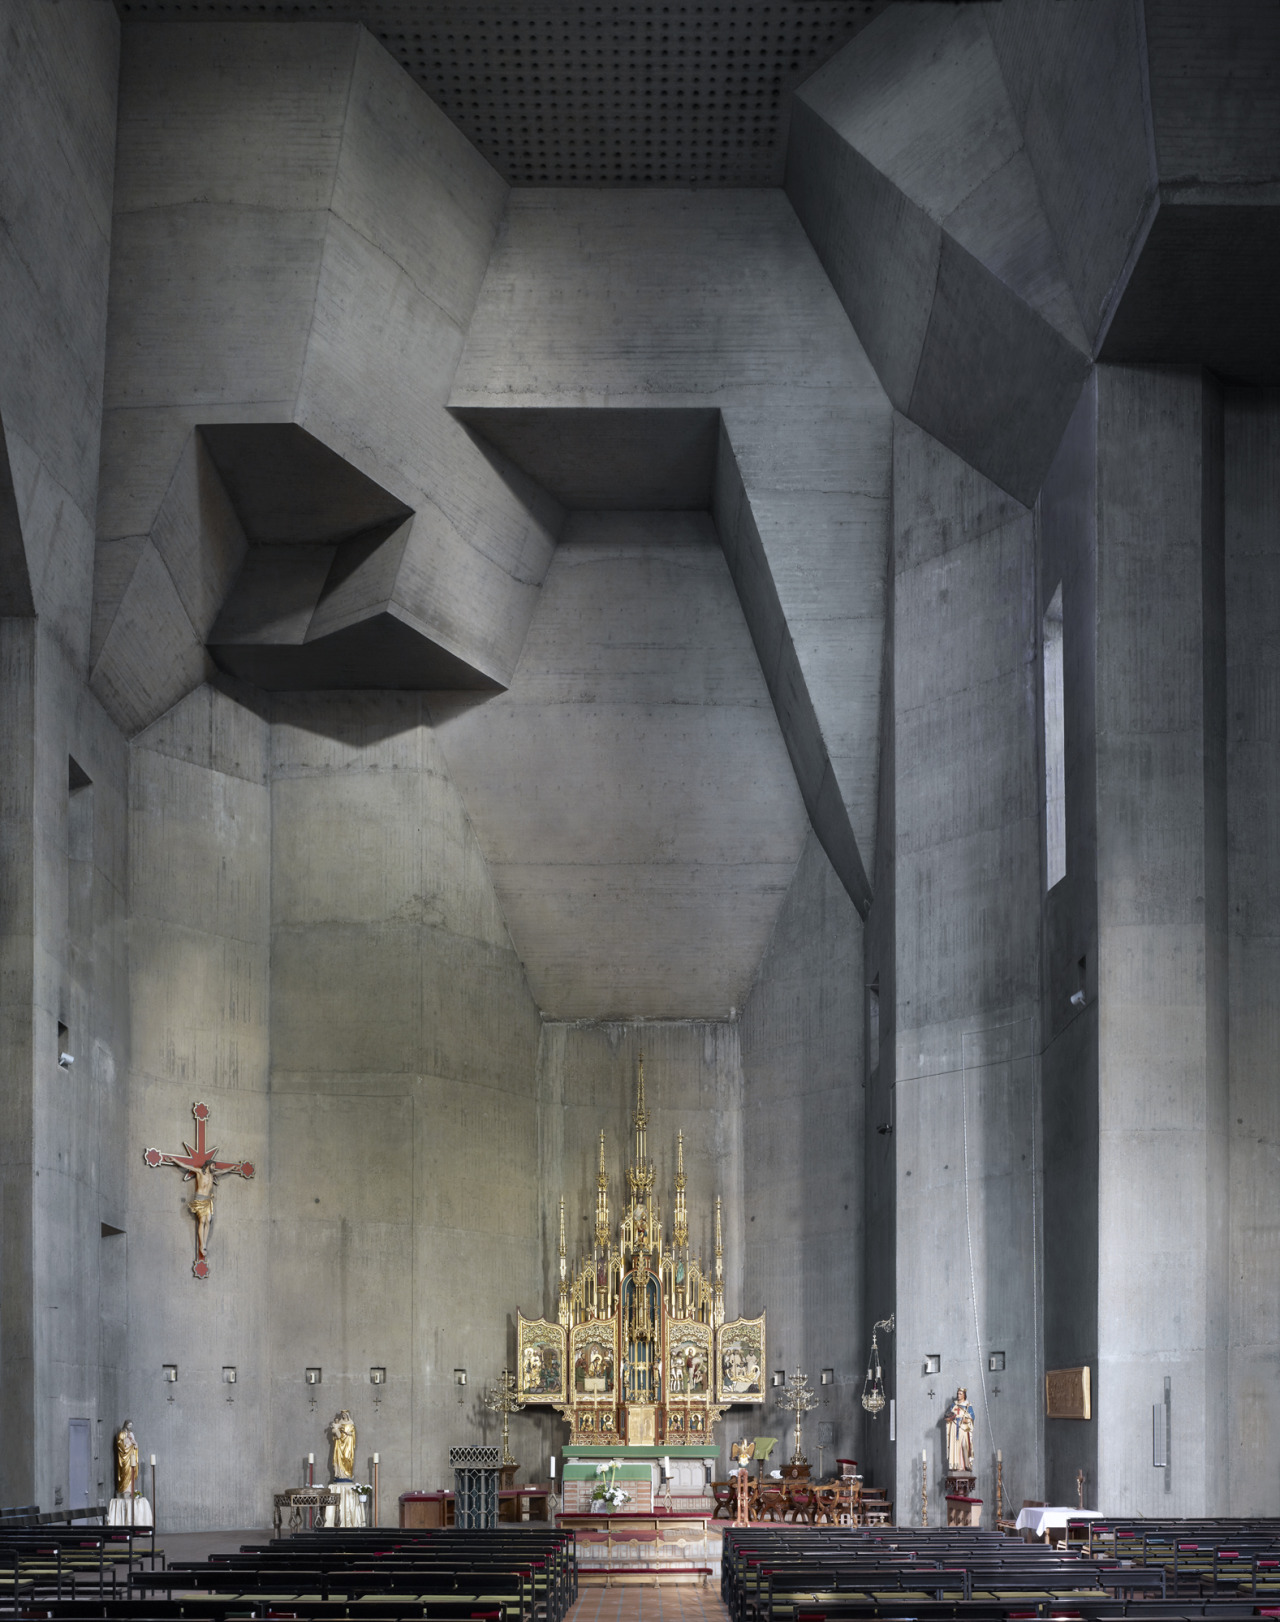 spacebaw:  Gottfried Böhm, St Louis catholic church interior, Saarlouis, 1970 ph: Fabrice Fouillet